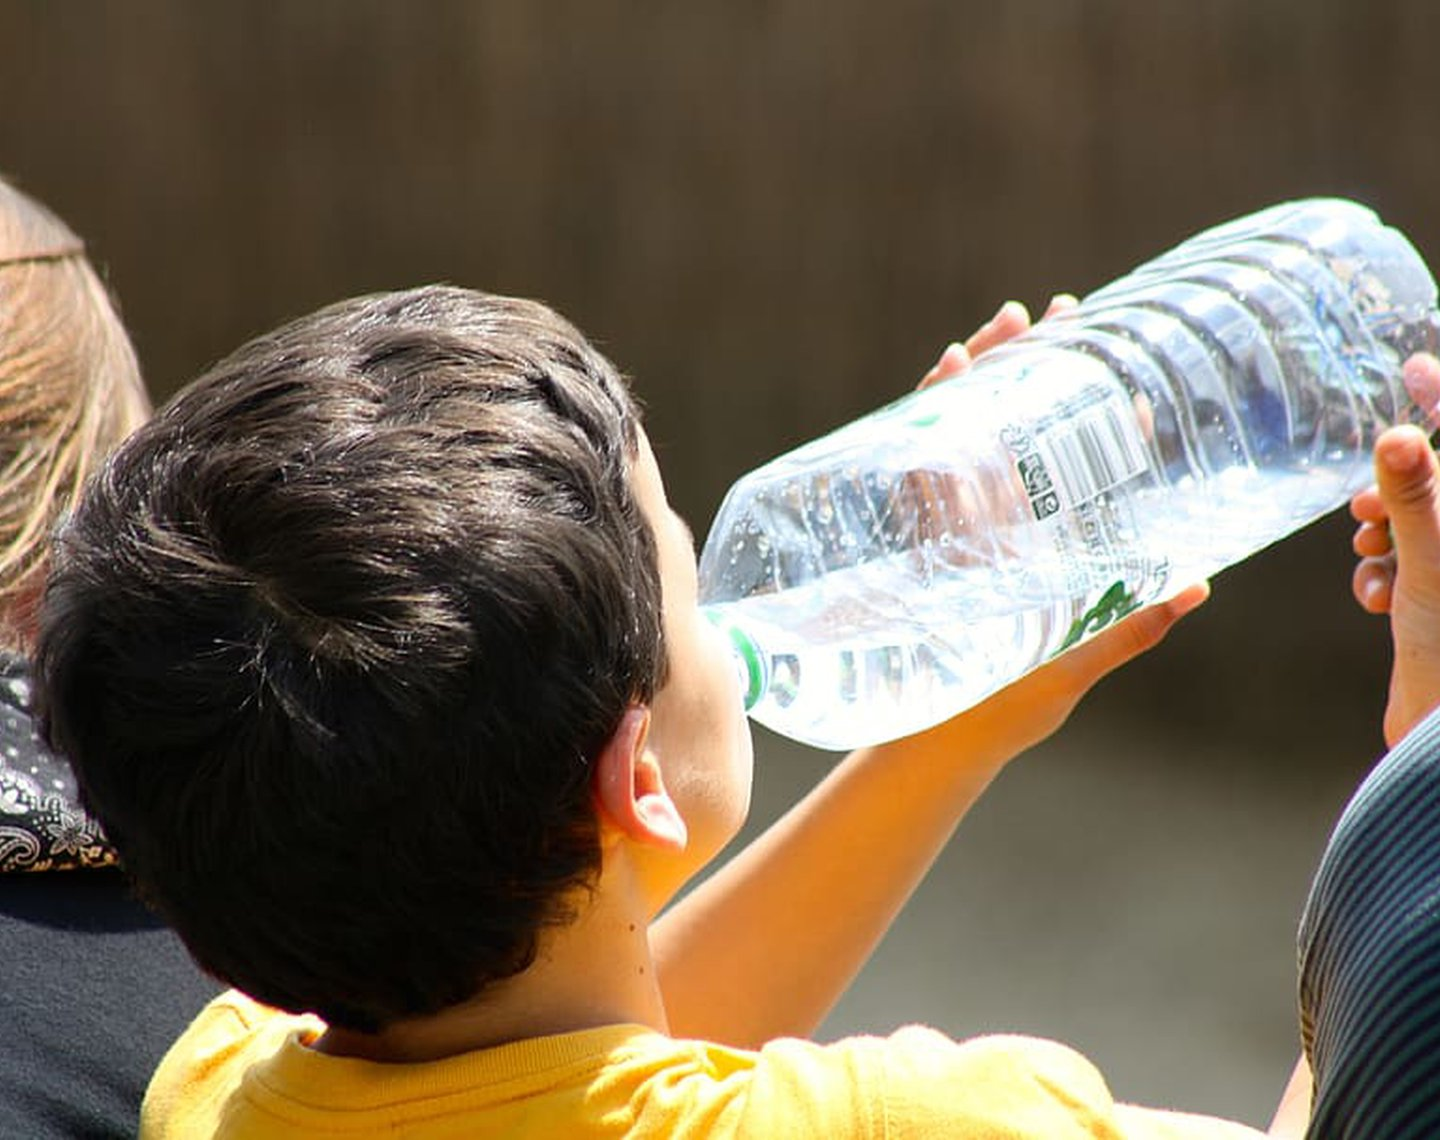 boy-drinking-from-bottle-child-drinking-water-thirsty-boy-drinking.jpg